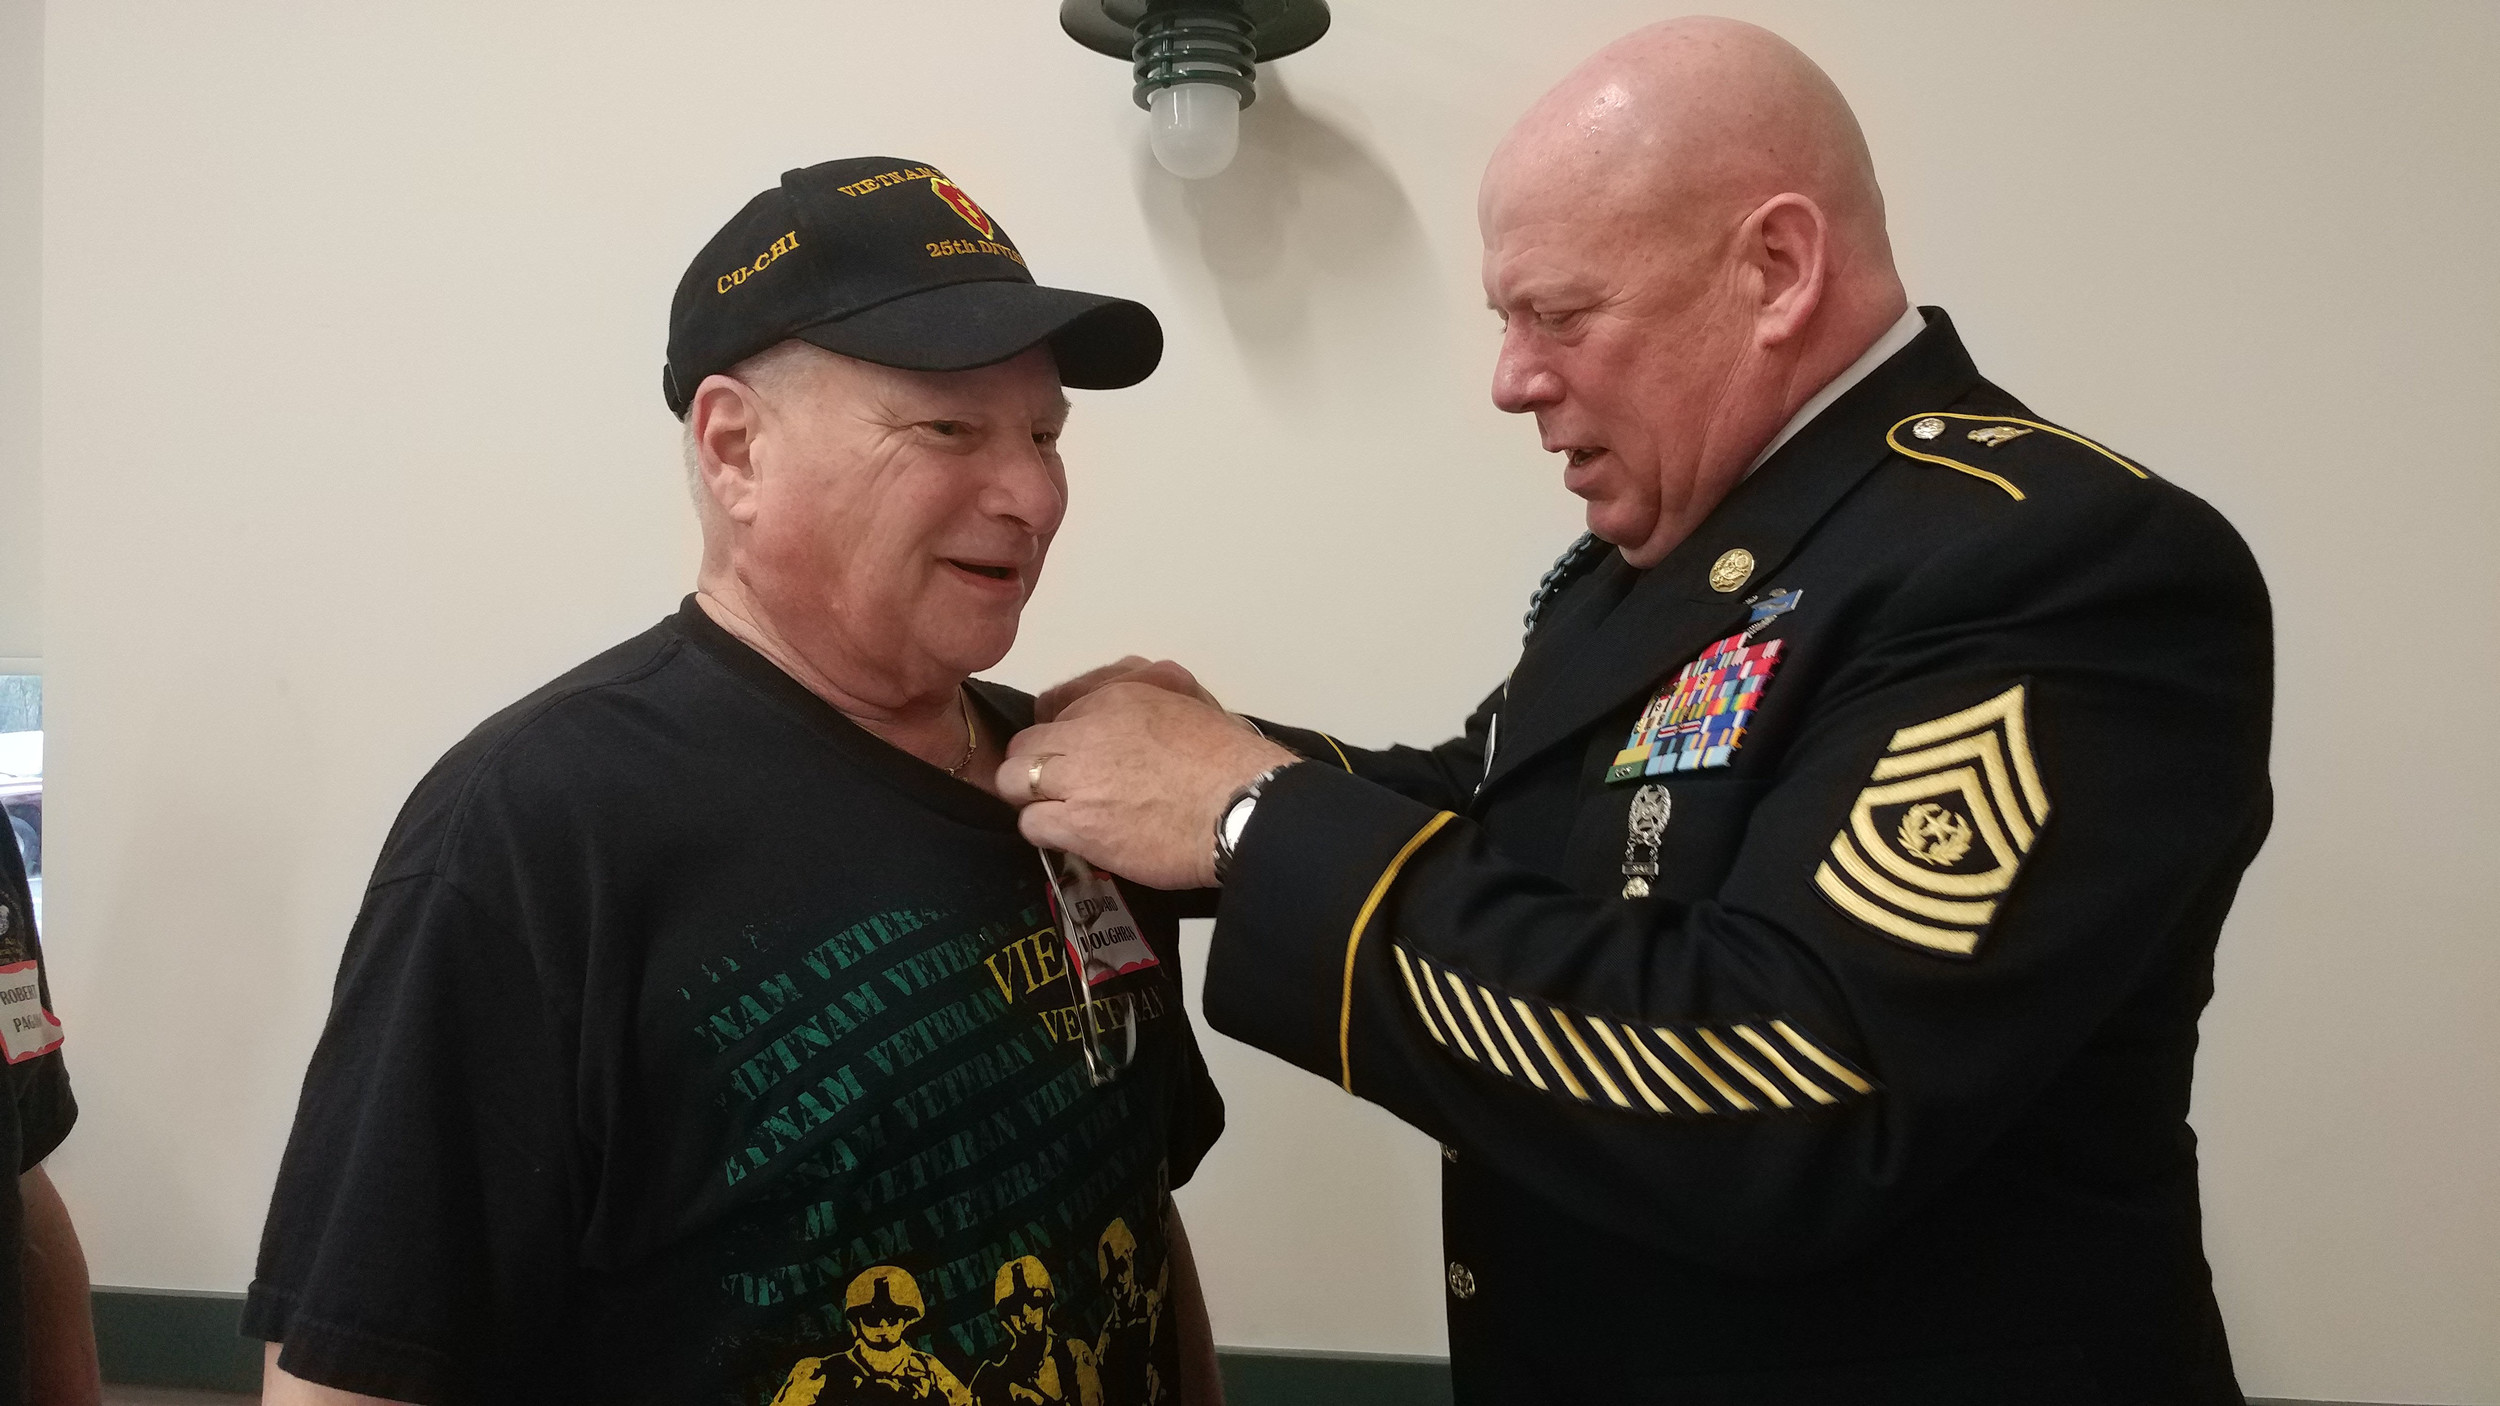 Edward Loughran receives his Vietnam Veteran lapel pin from Sergeant Major Harry J. Buchanan III Friday, Nov. 3 at the 2017 Veterans breakfast and recognition ceremony.